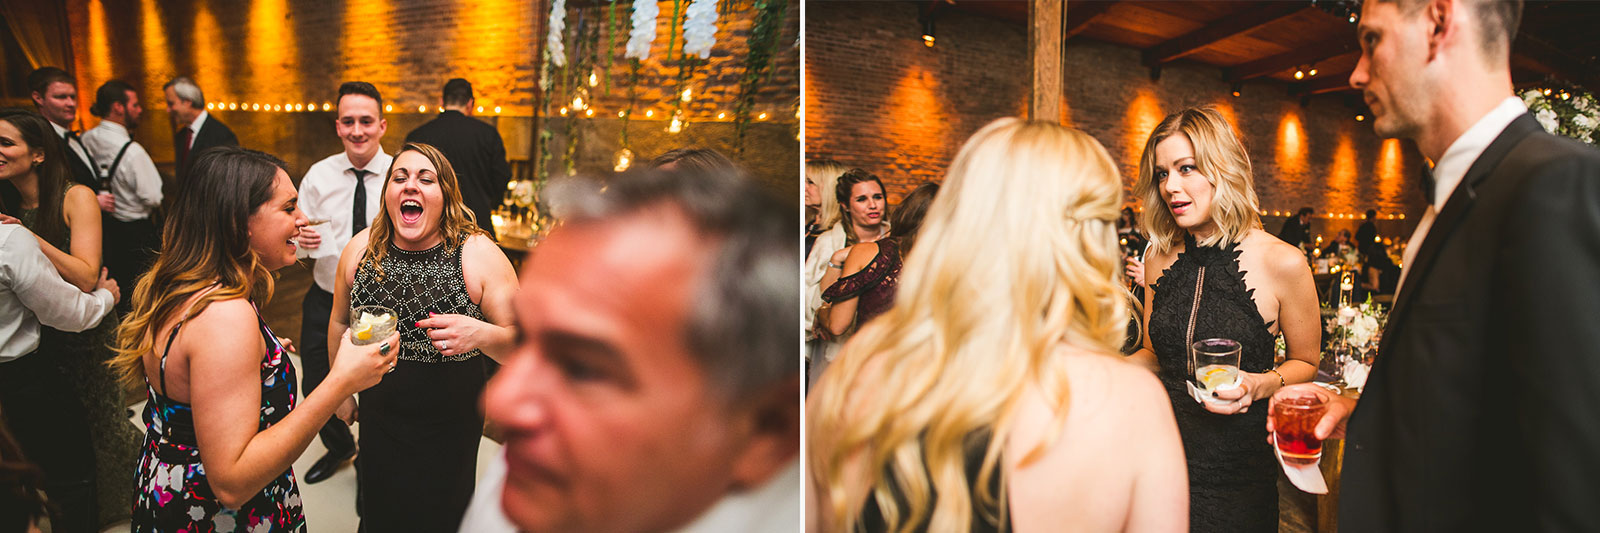 71 wedding reception photography at gallery 1028 - Chicago Wedding Photography at Gallery 1028 // Courtnie + David